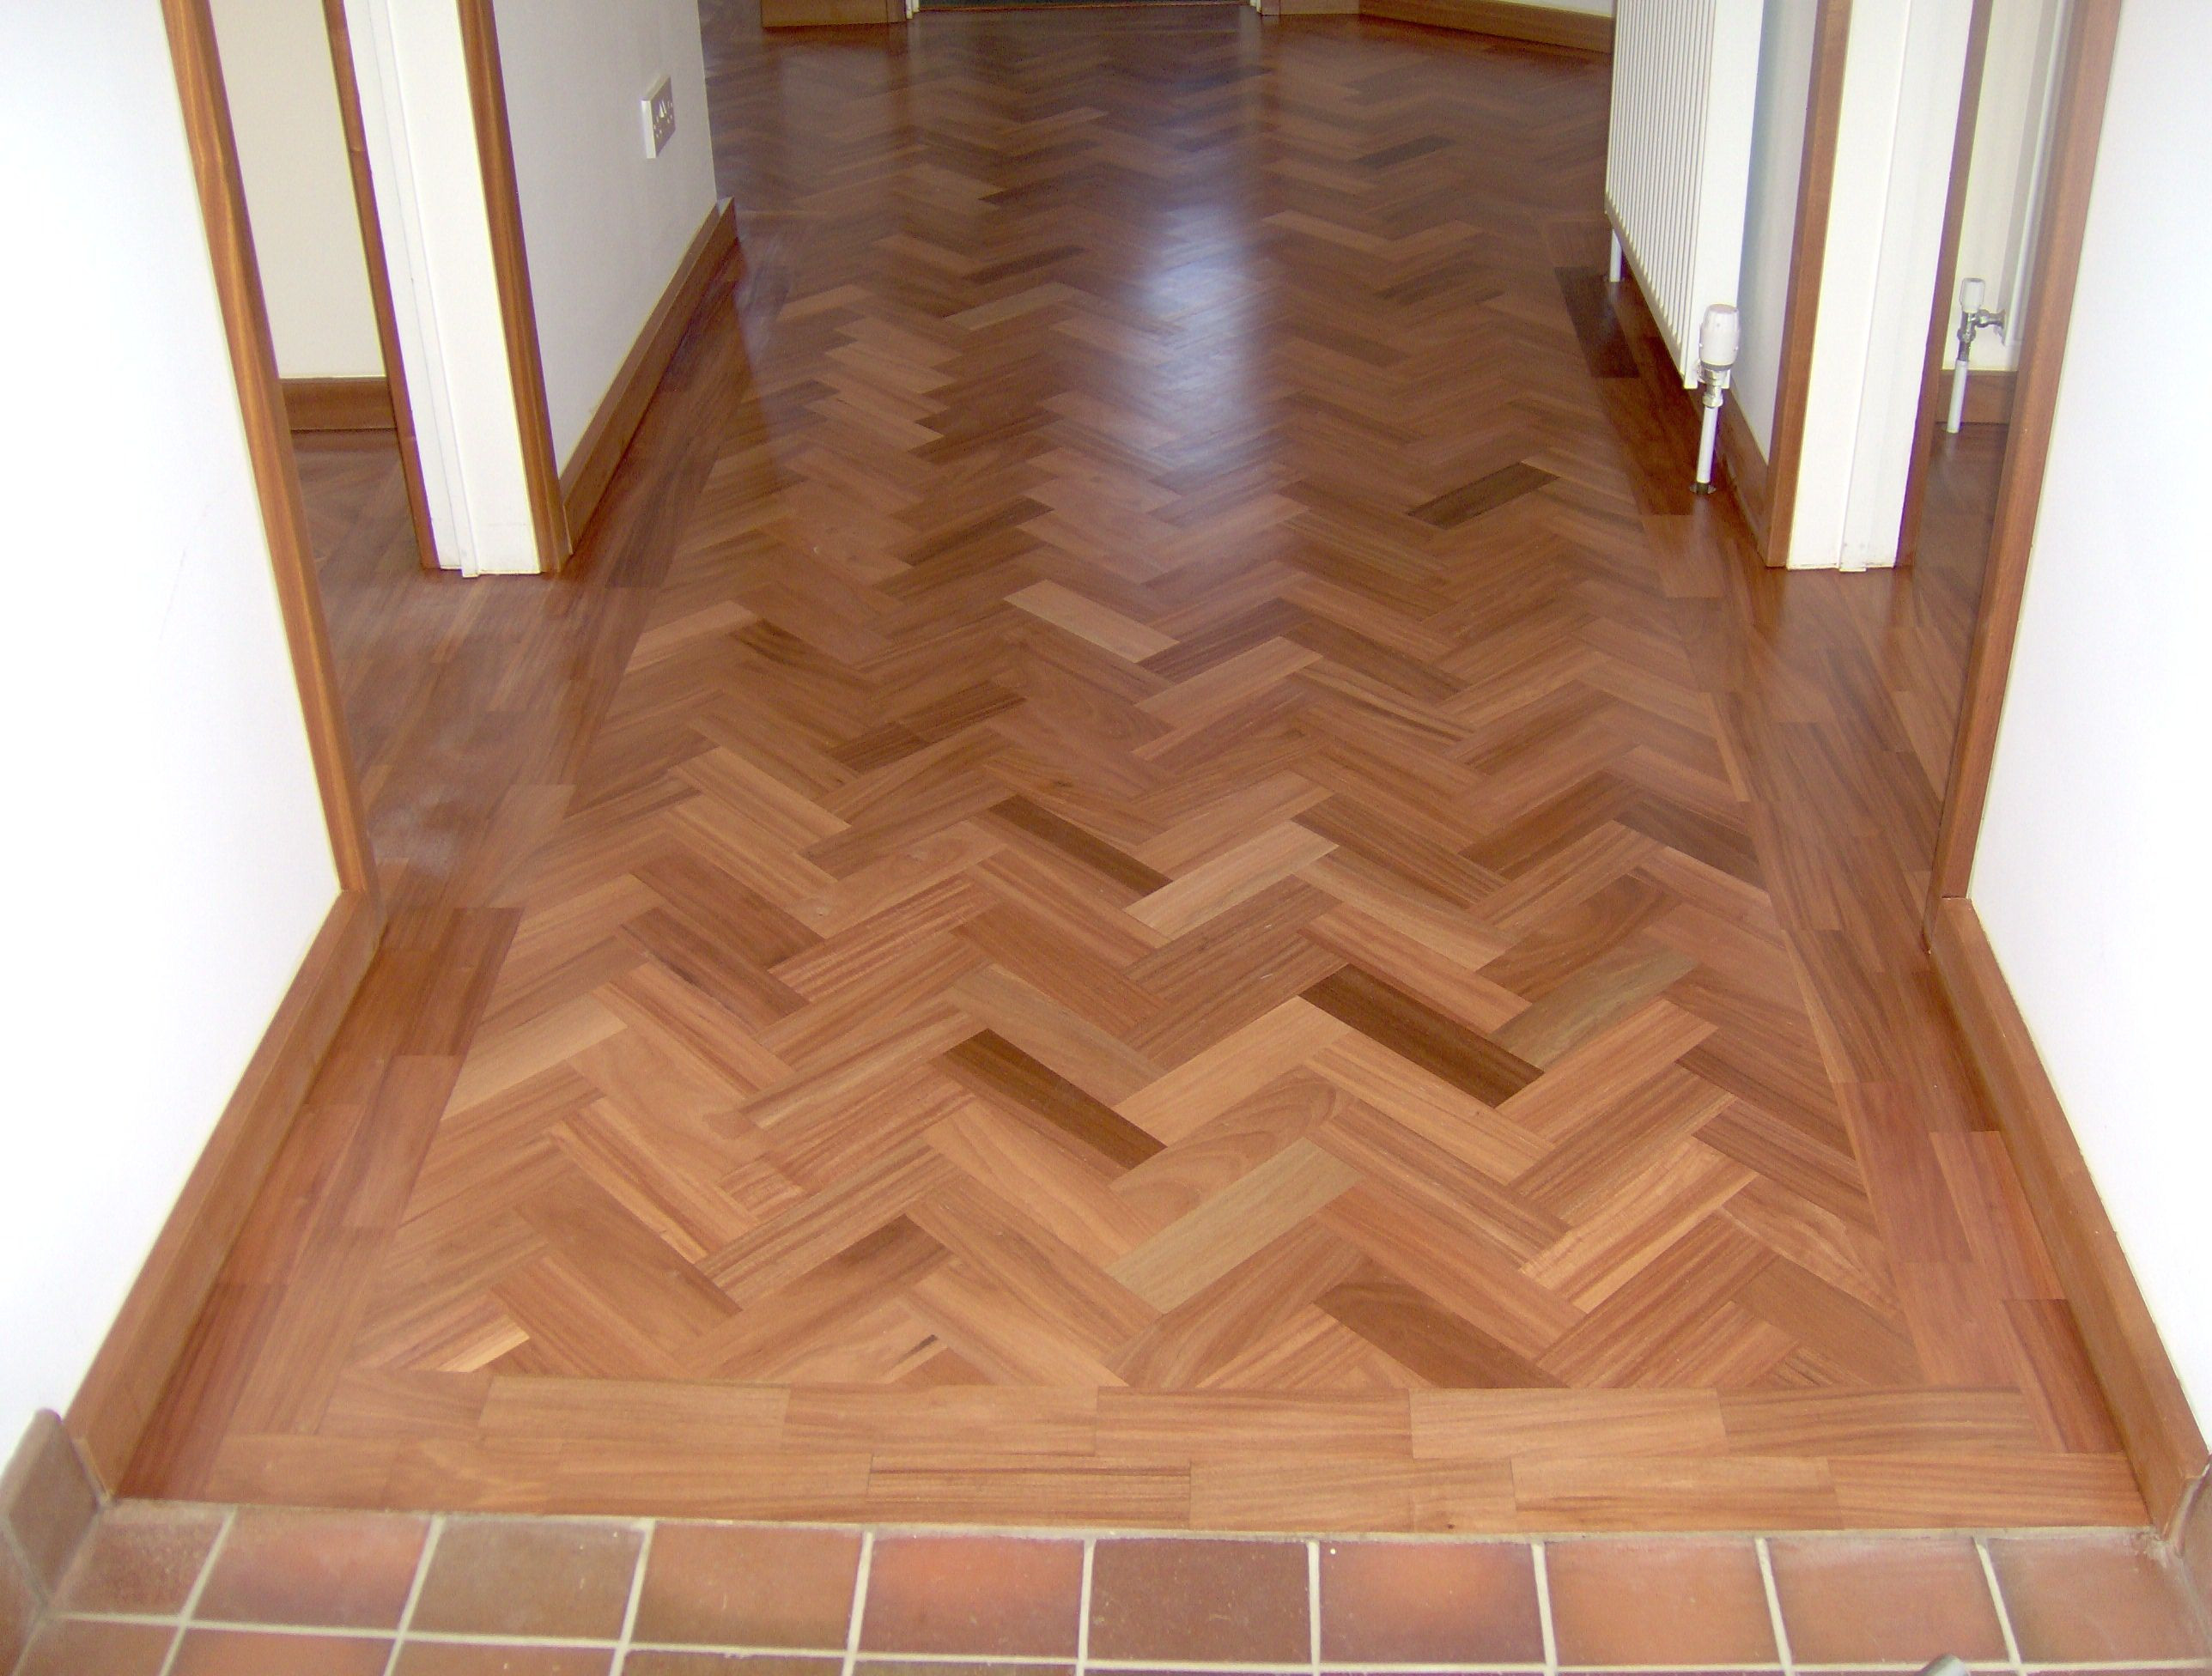 cheap hardwood flooring houston tx of gorgeous reformed home with parkay floor remarkable white wall and in hallway and bedrooms parquet flooring wooden flooring parkay flooring floors floor design